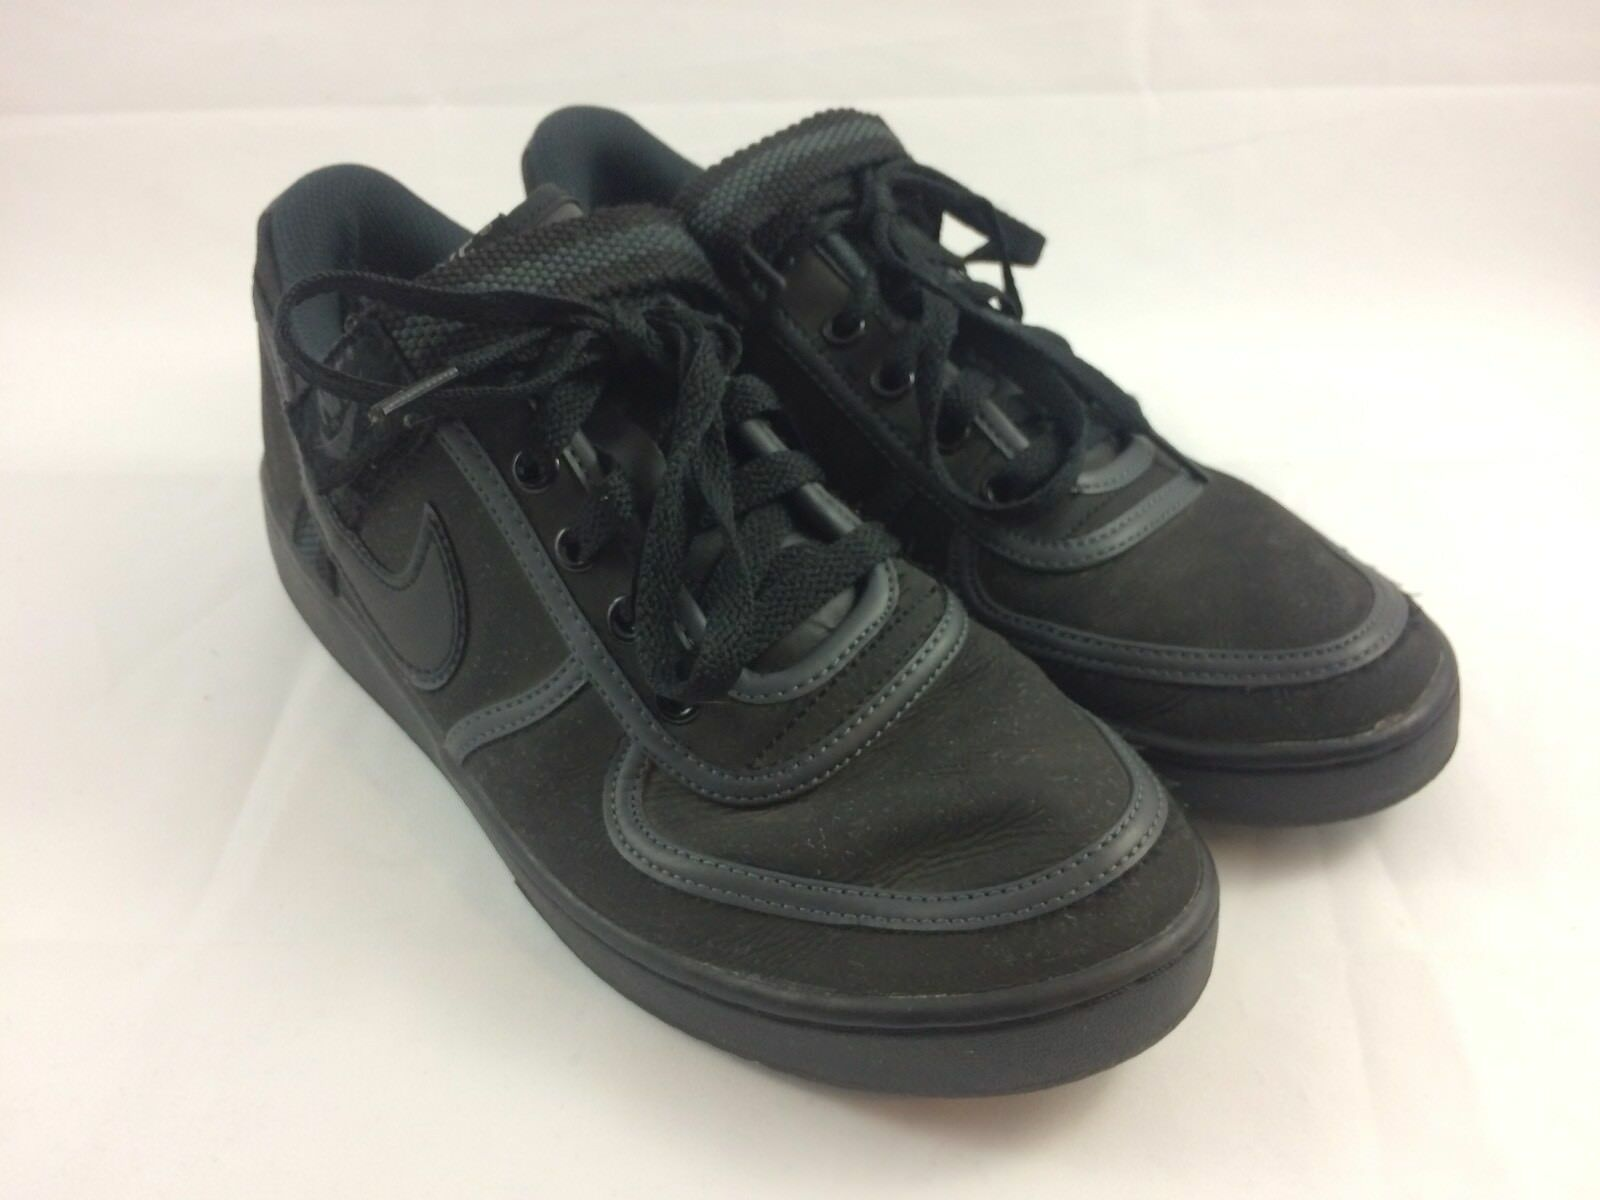 NIKE Women's Vandal Low Black Shoe Comfortable The latest discount shoes for men and women